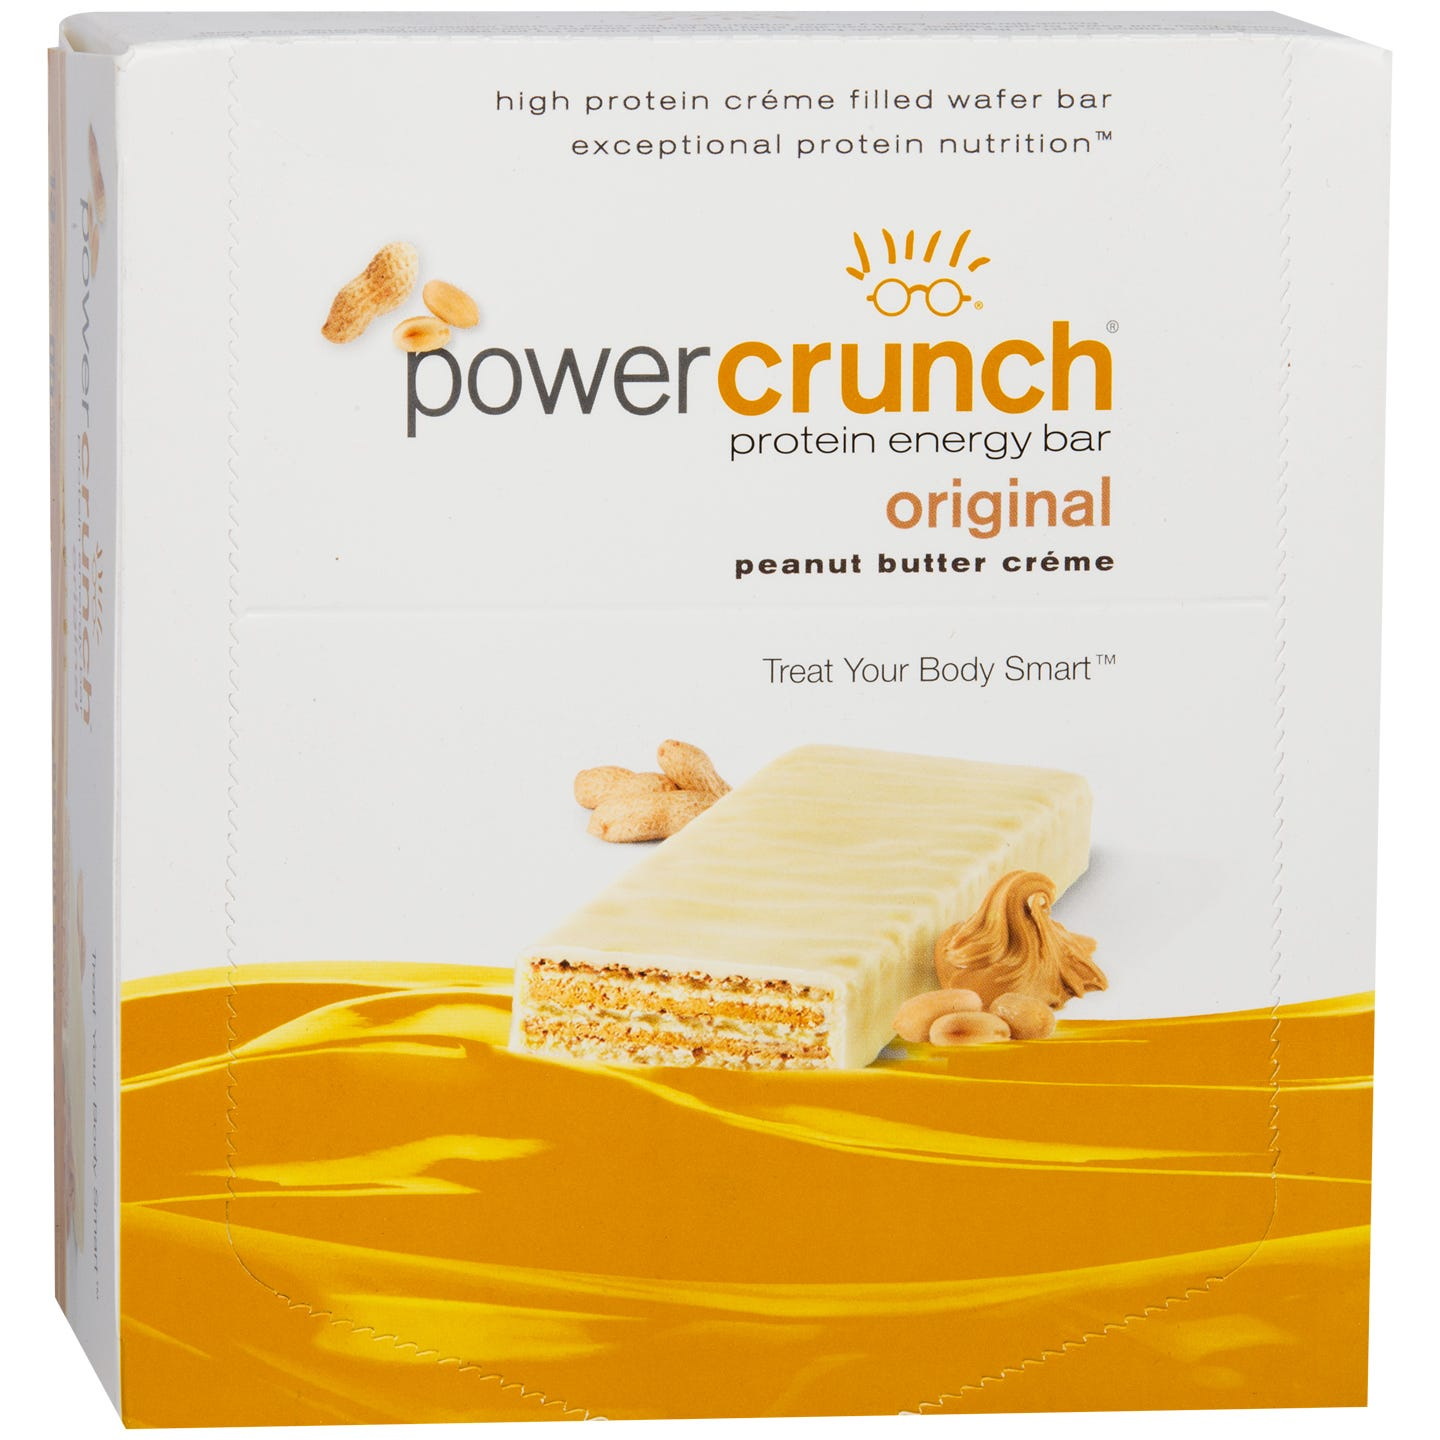 Protein Energy Bar Peanut Butter Creme (12 ct) - Power Crunch - Rapid Diet Weight Loss Products Shop